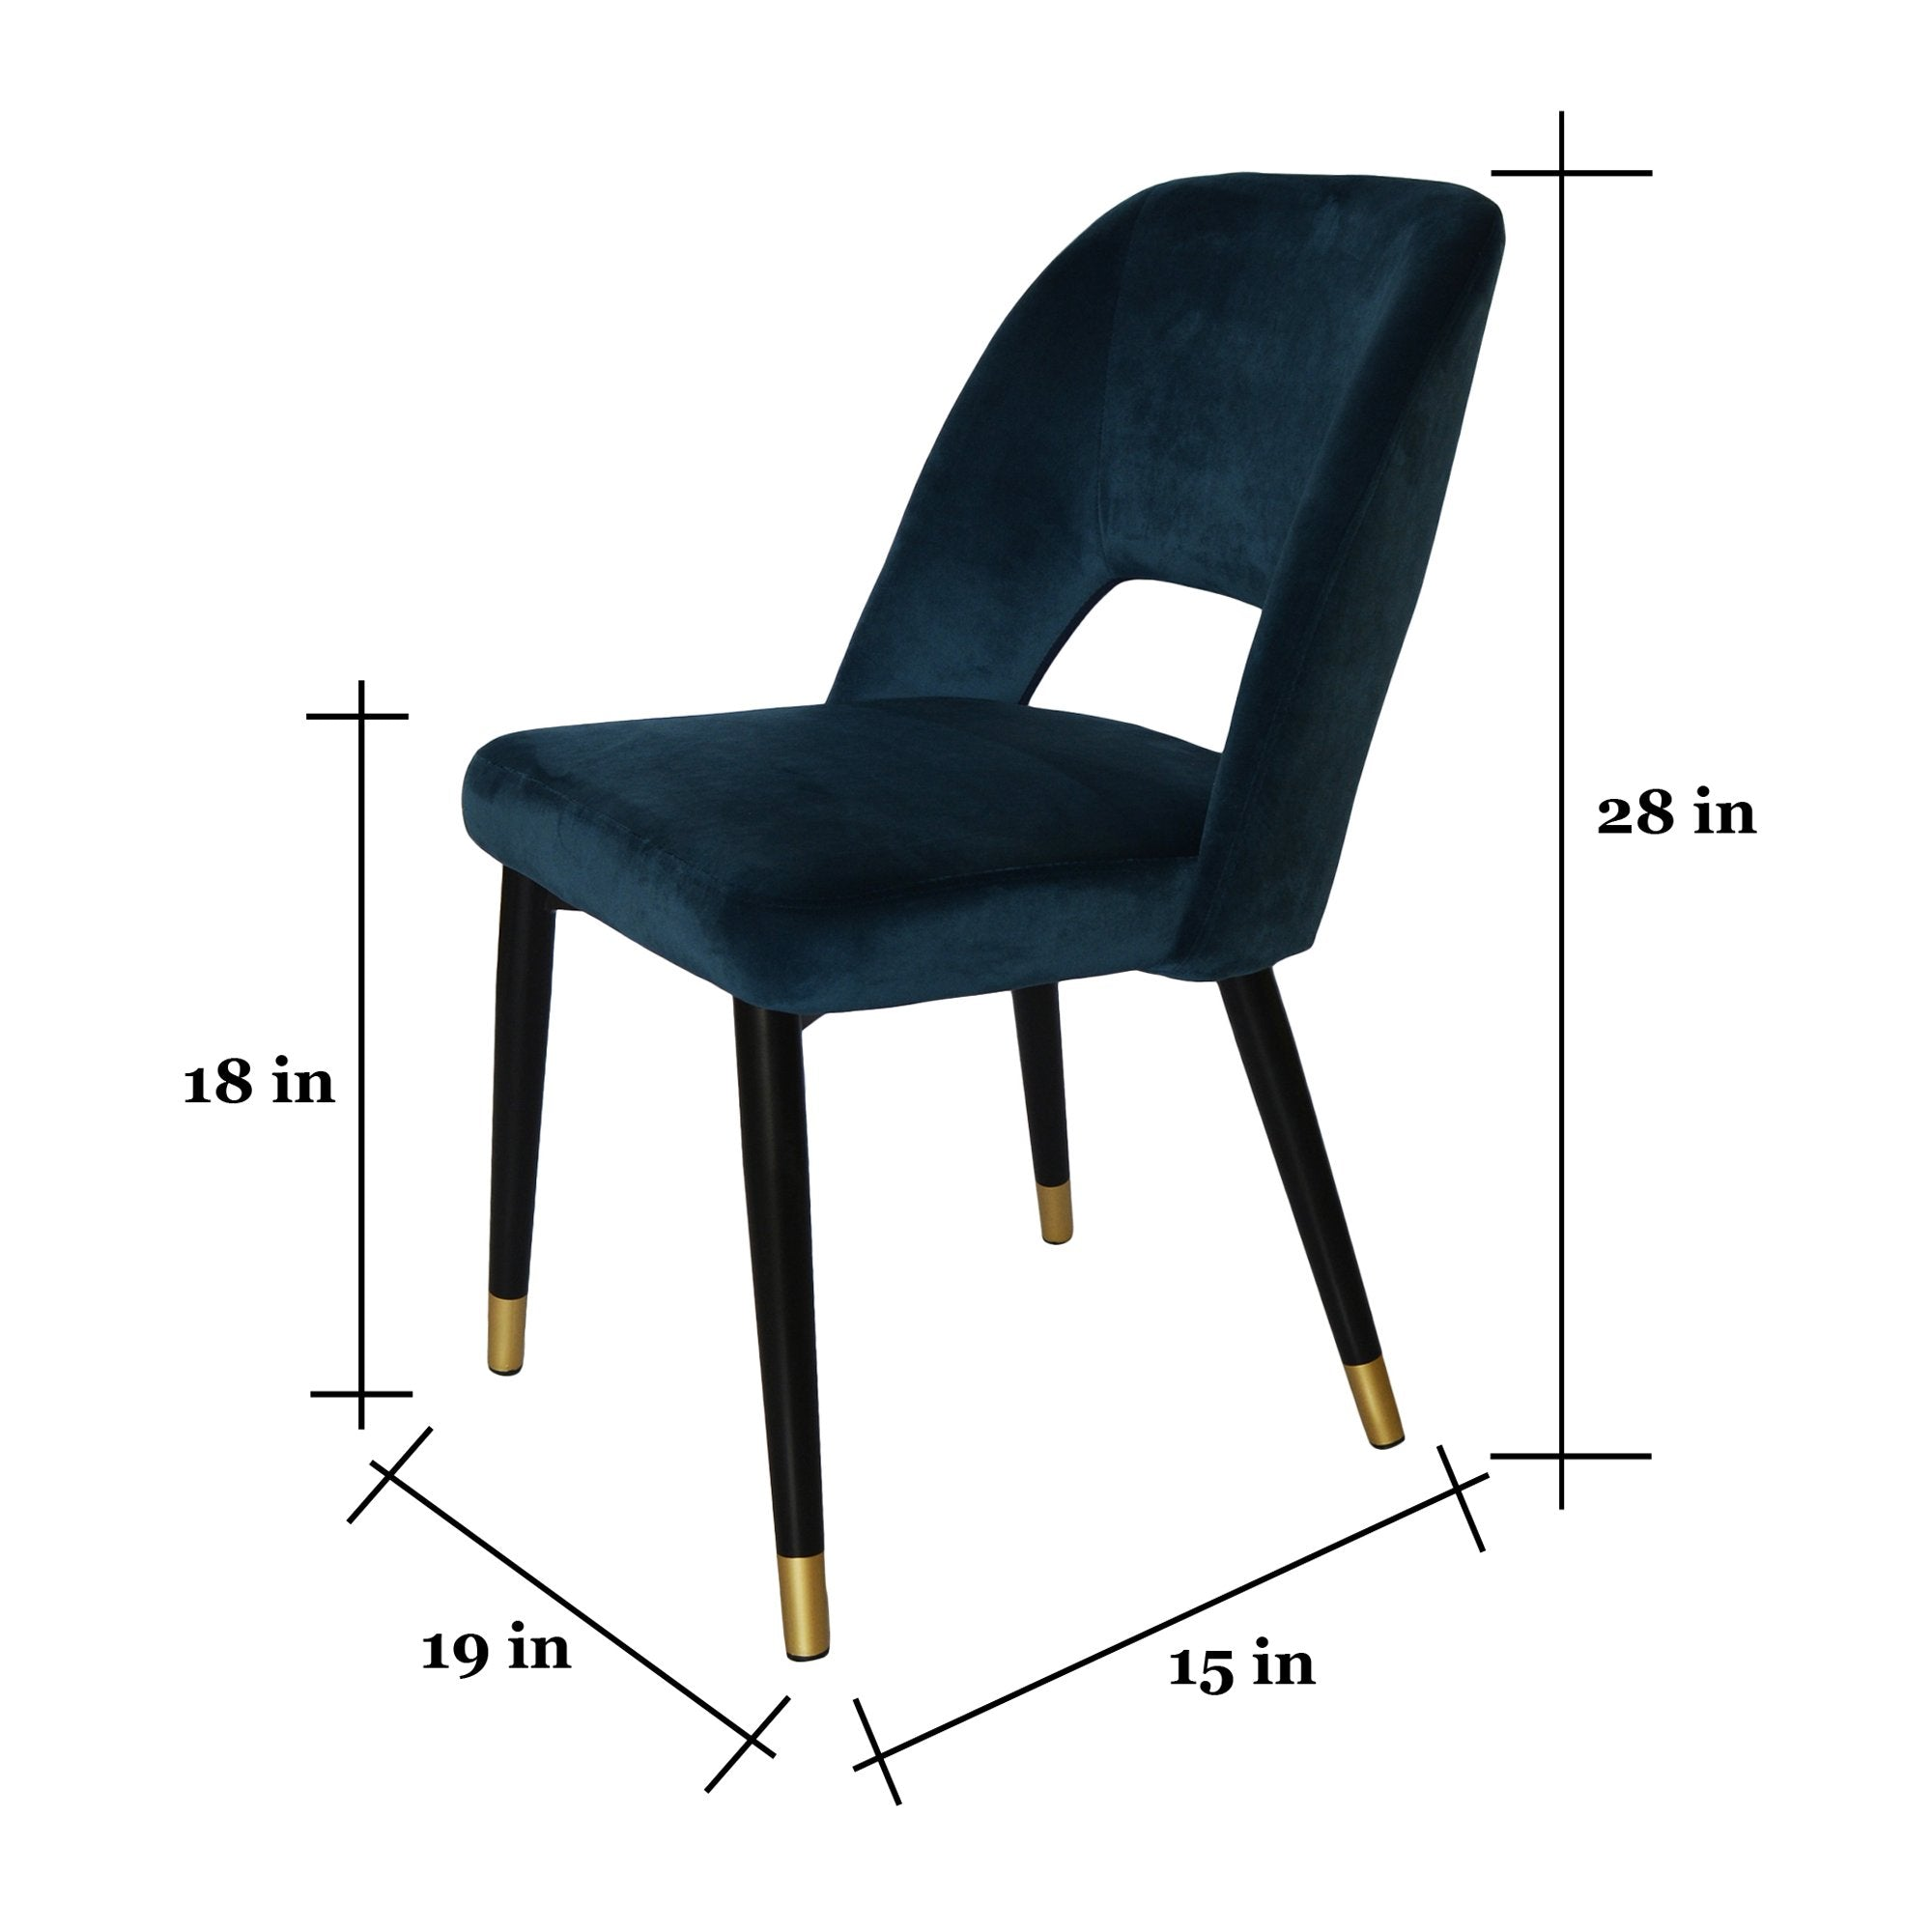 Plush Midnight Blue Chair for the Luxurious Youa from Teaktale Home Decors